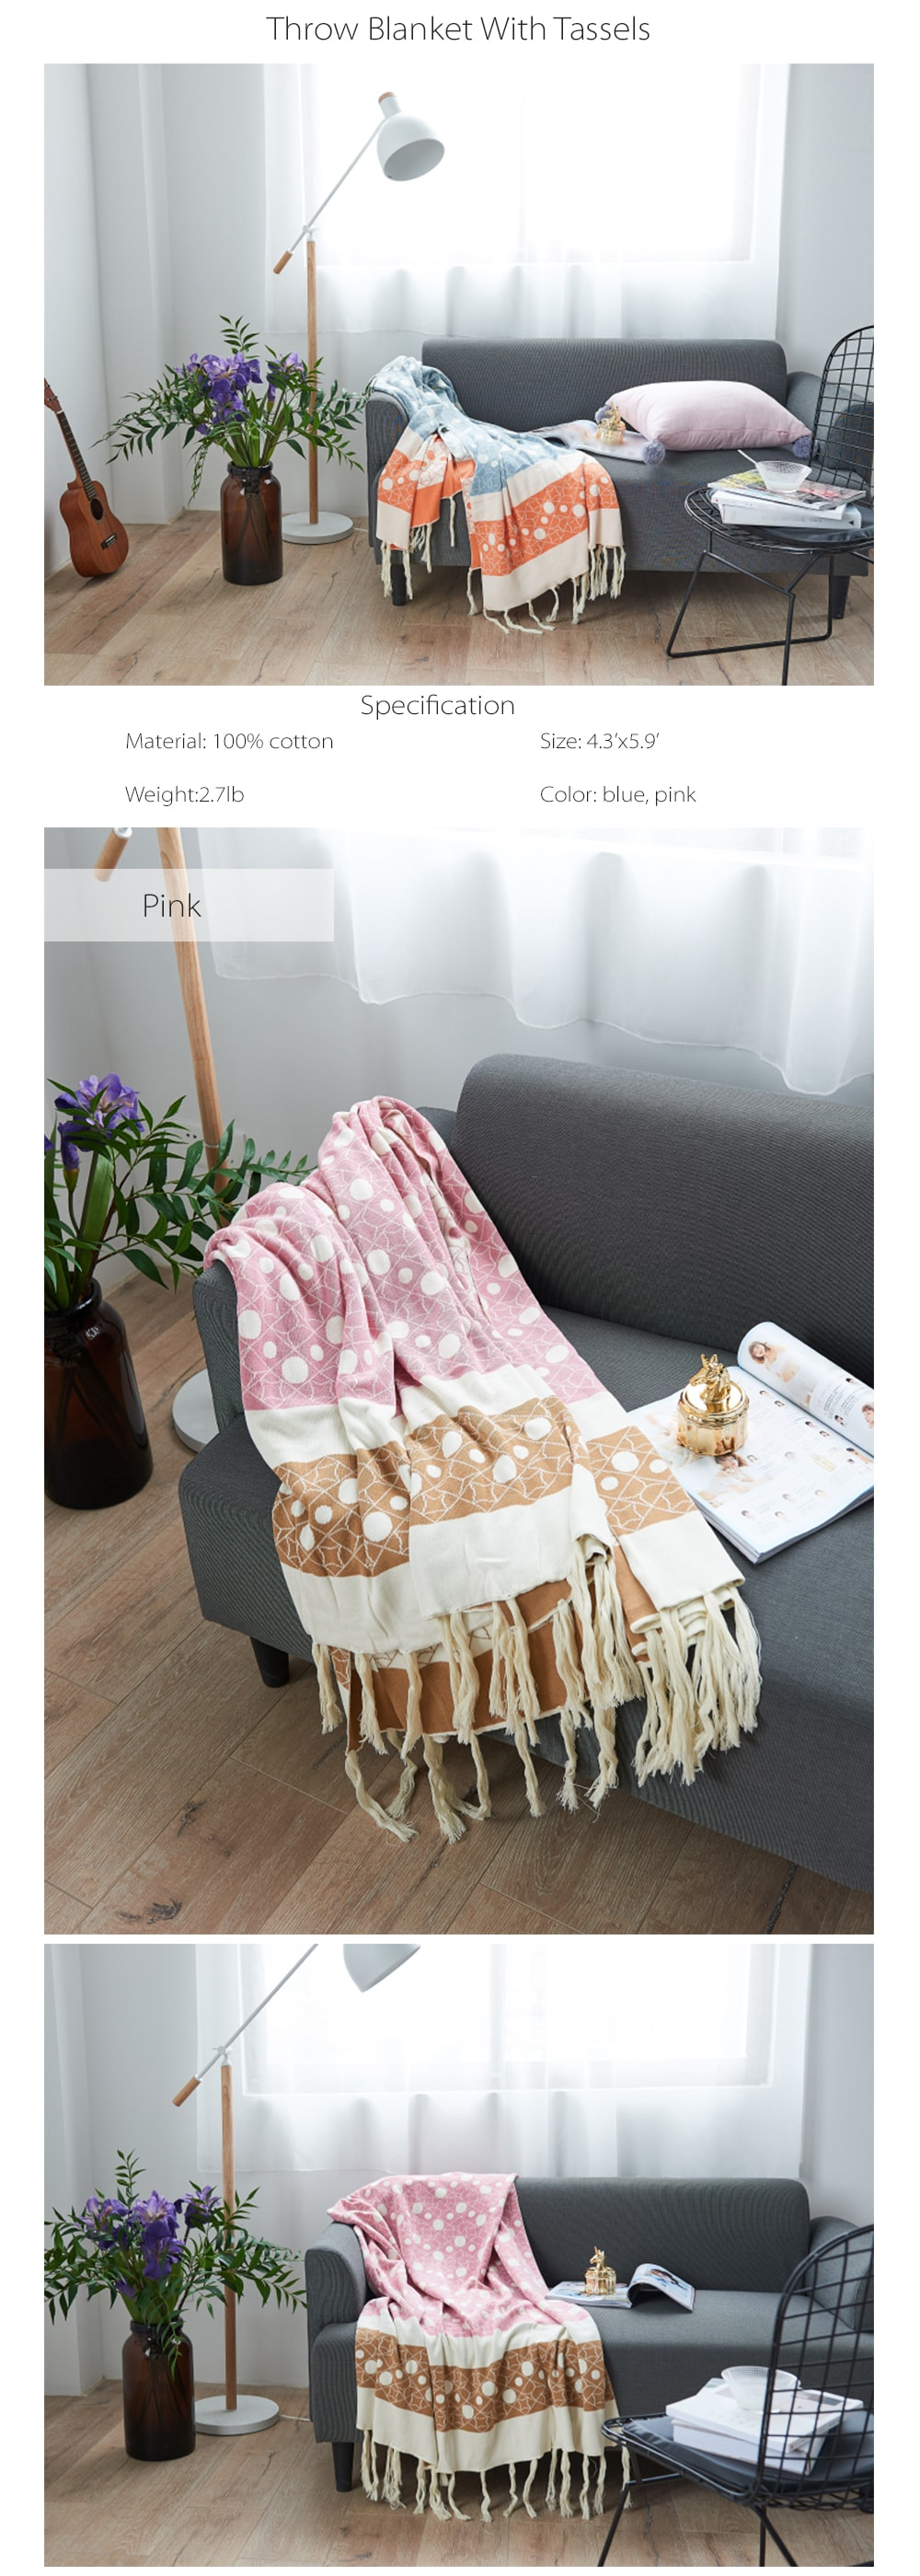 Throw Blanket with Tassels Made of Cotton